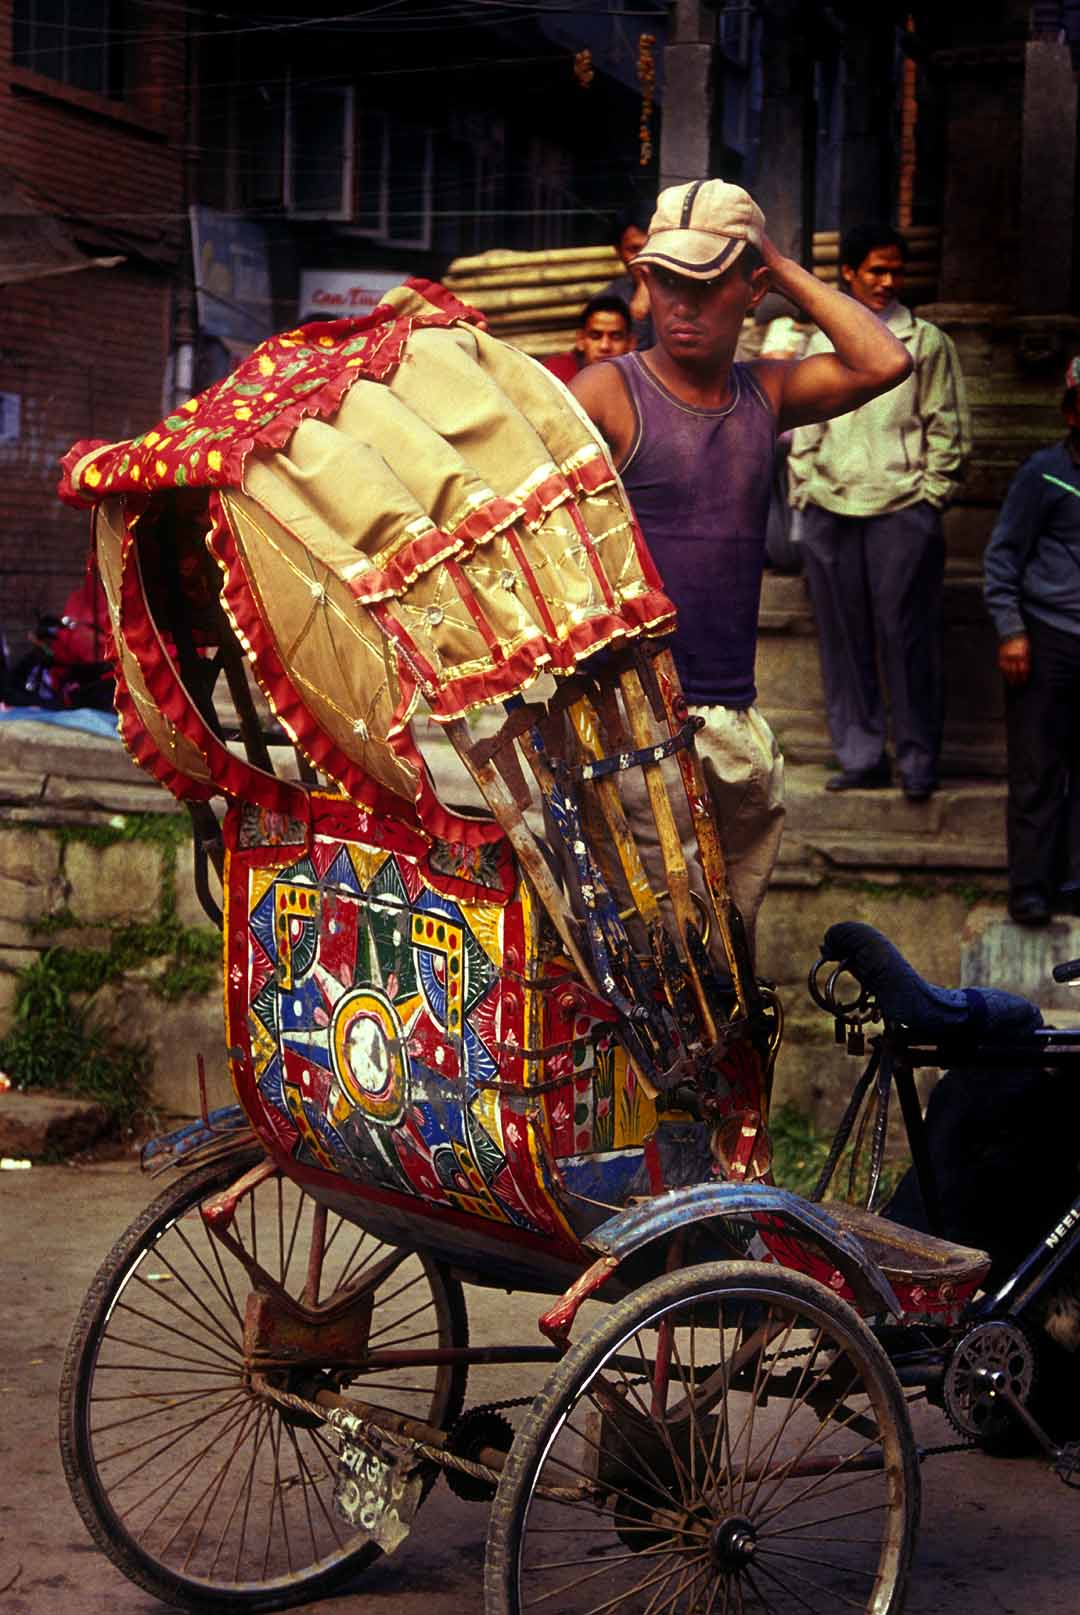 By Steve Evans from India and USA (Bangladesh Rickshaw) [CC-BY-2.0 (http://creativecommons.org/licenses/by/2.0)], via Wikimedia Commons